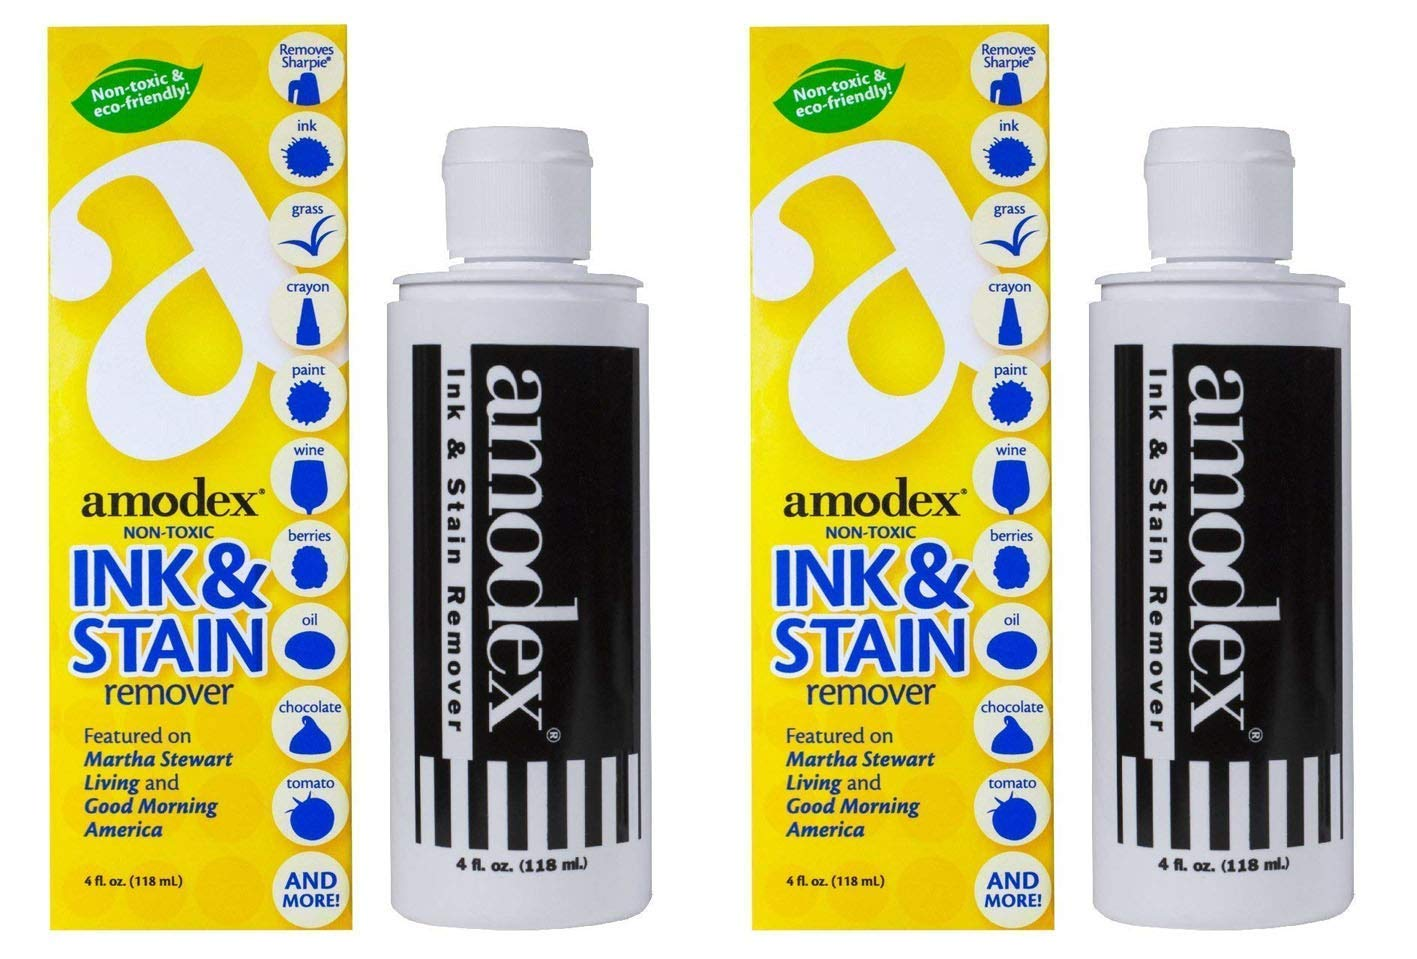 Amodex Ink and Stain Remover - Cleans Marker, Ink, Crayon, Pen, Makeup from Furniture, Skin, Clothing, Fabric, Leather - Liquid Solution - 4 fl oz Bottle (Pack of 2)